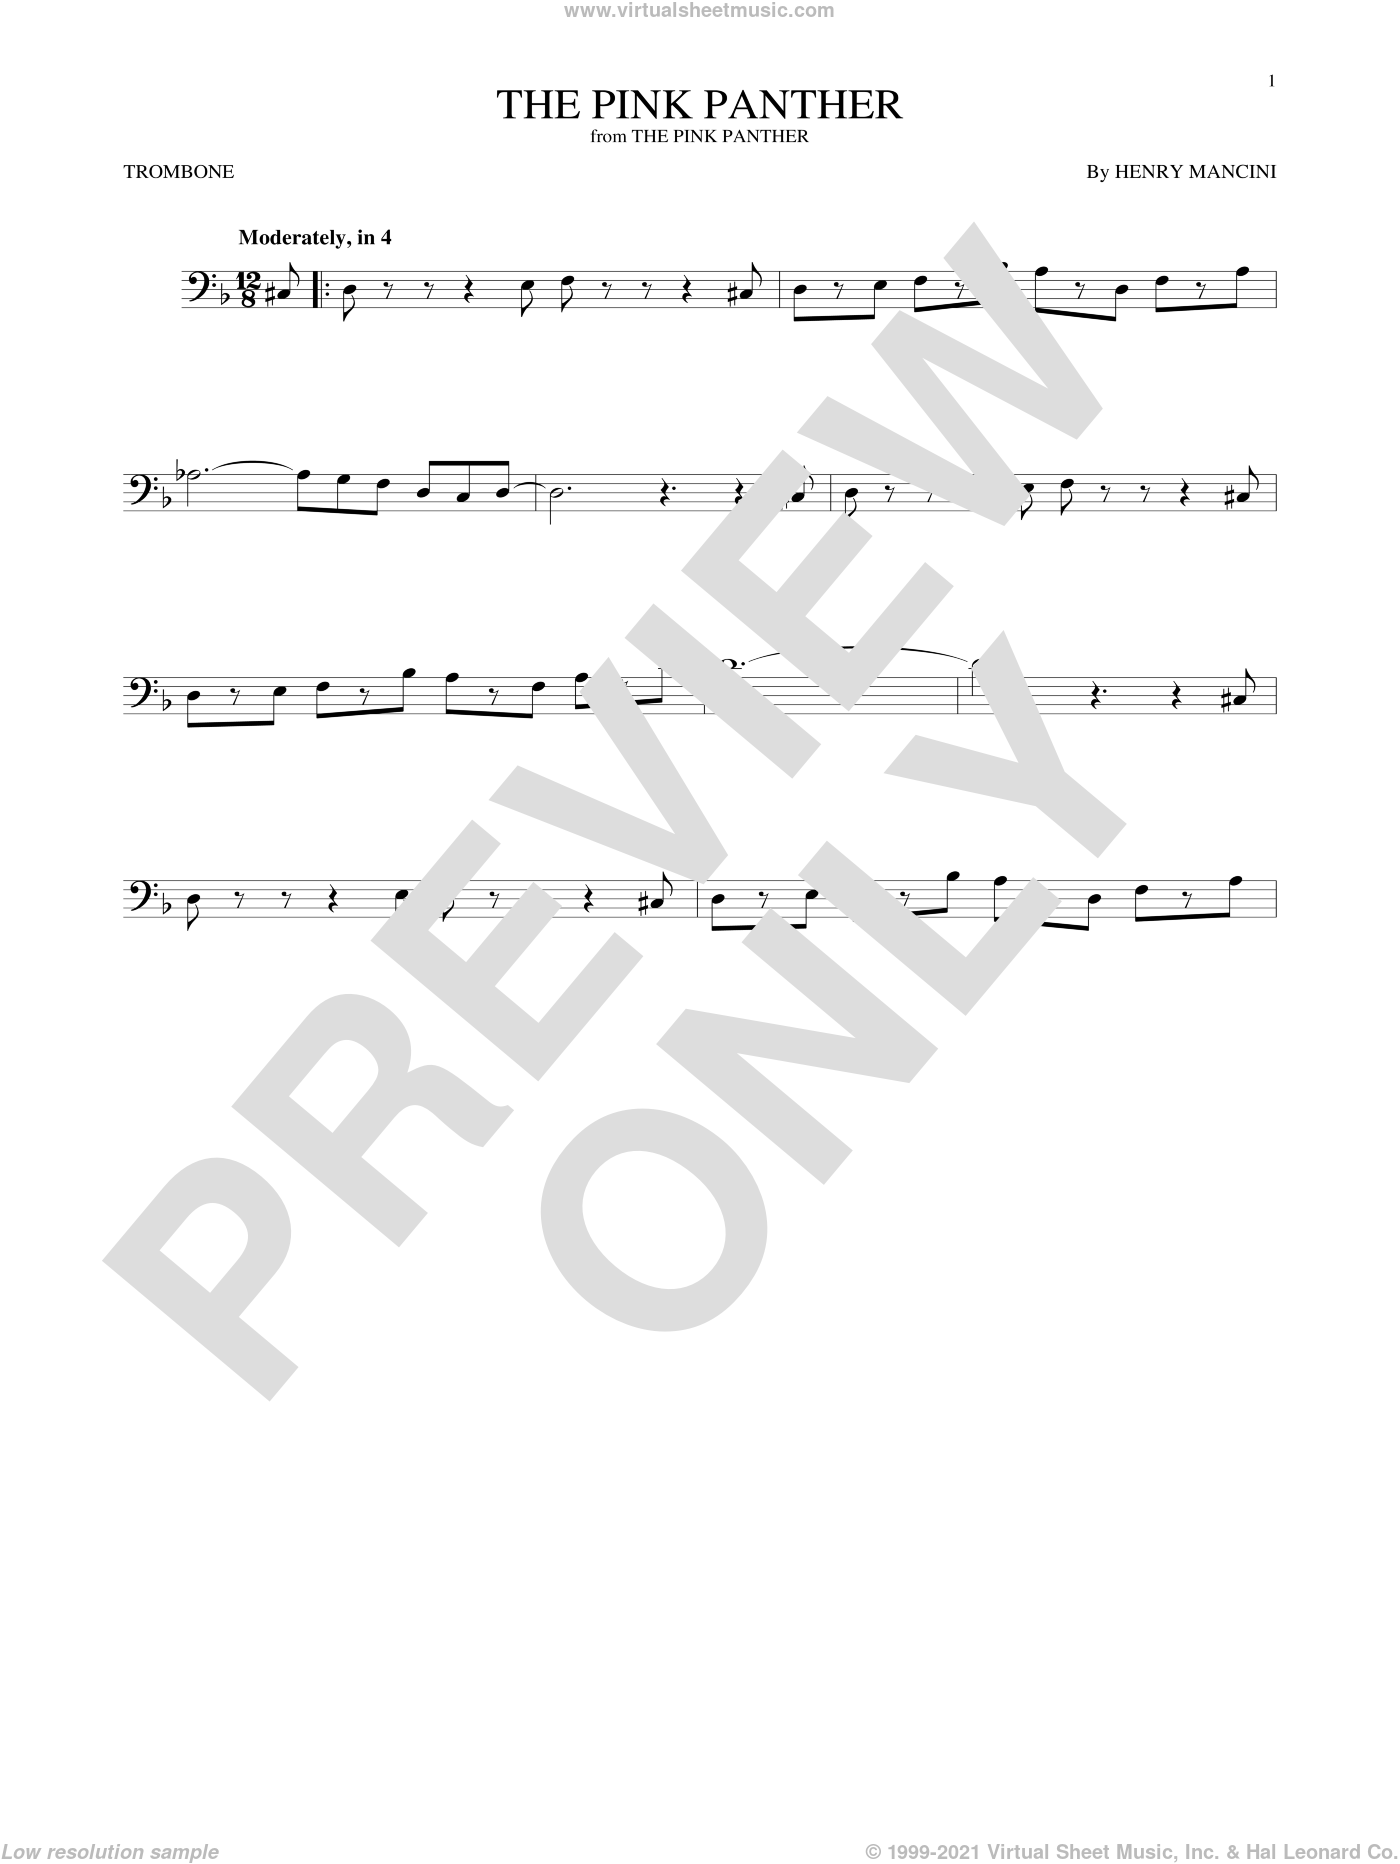 The Pink Panther sheet music for trombone solo by Henry Mancini, intermediate skill level